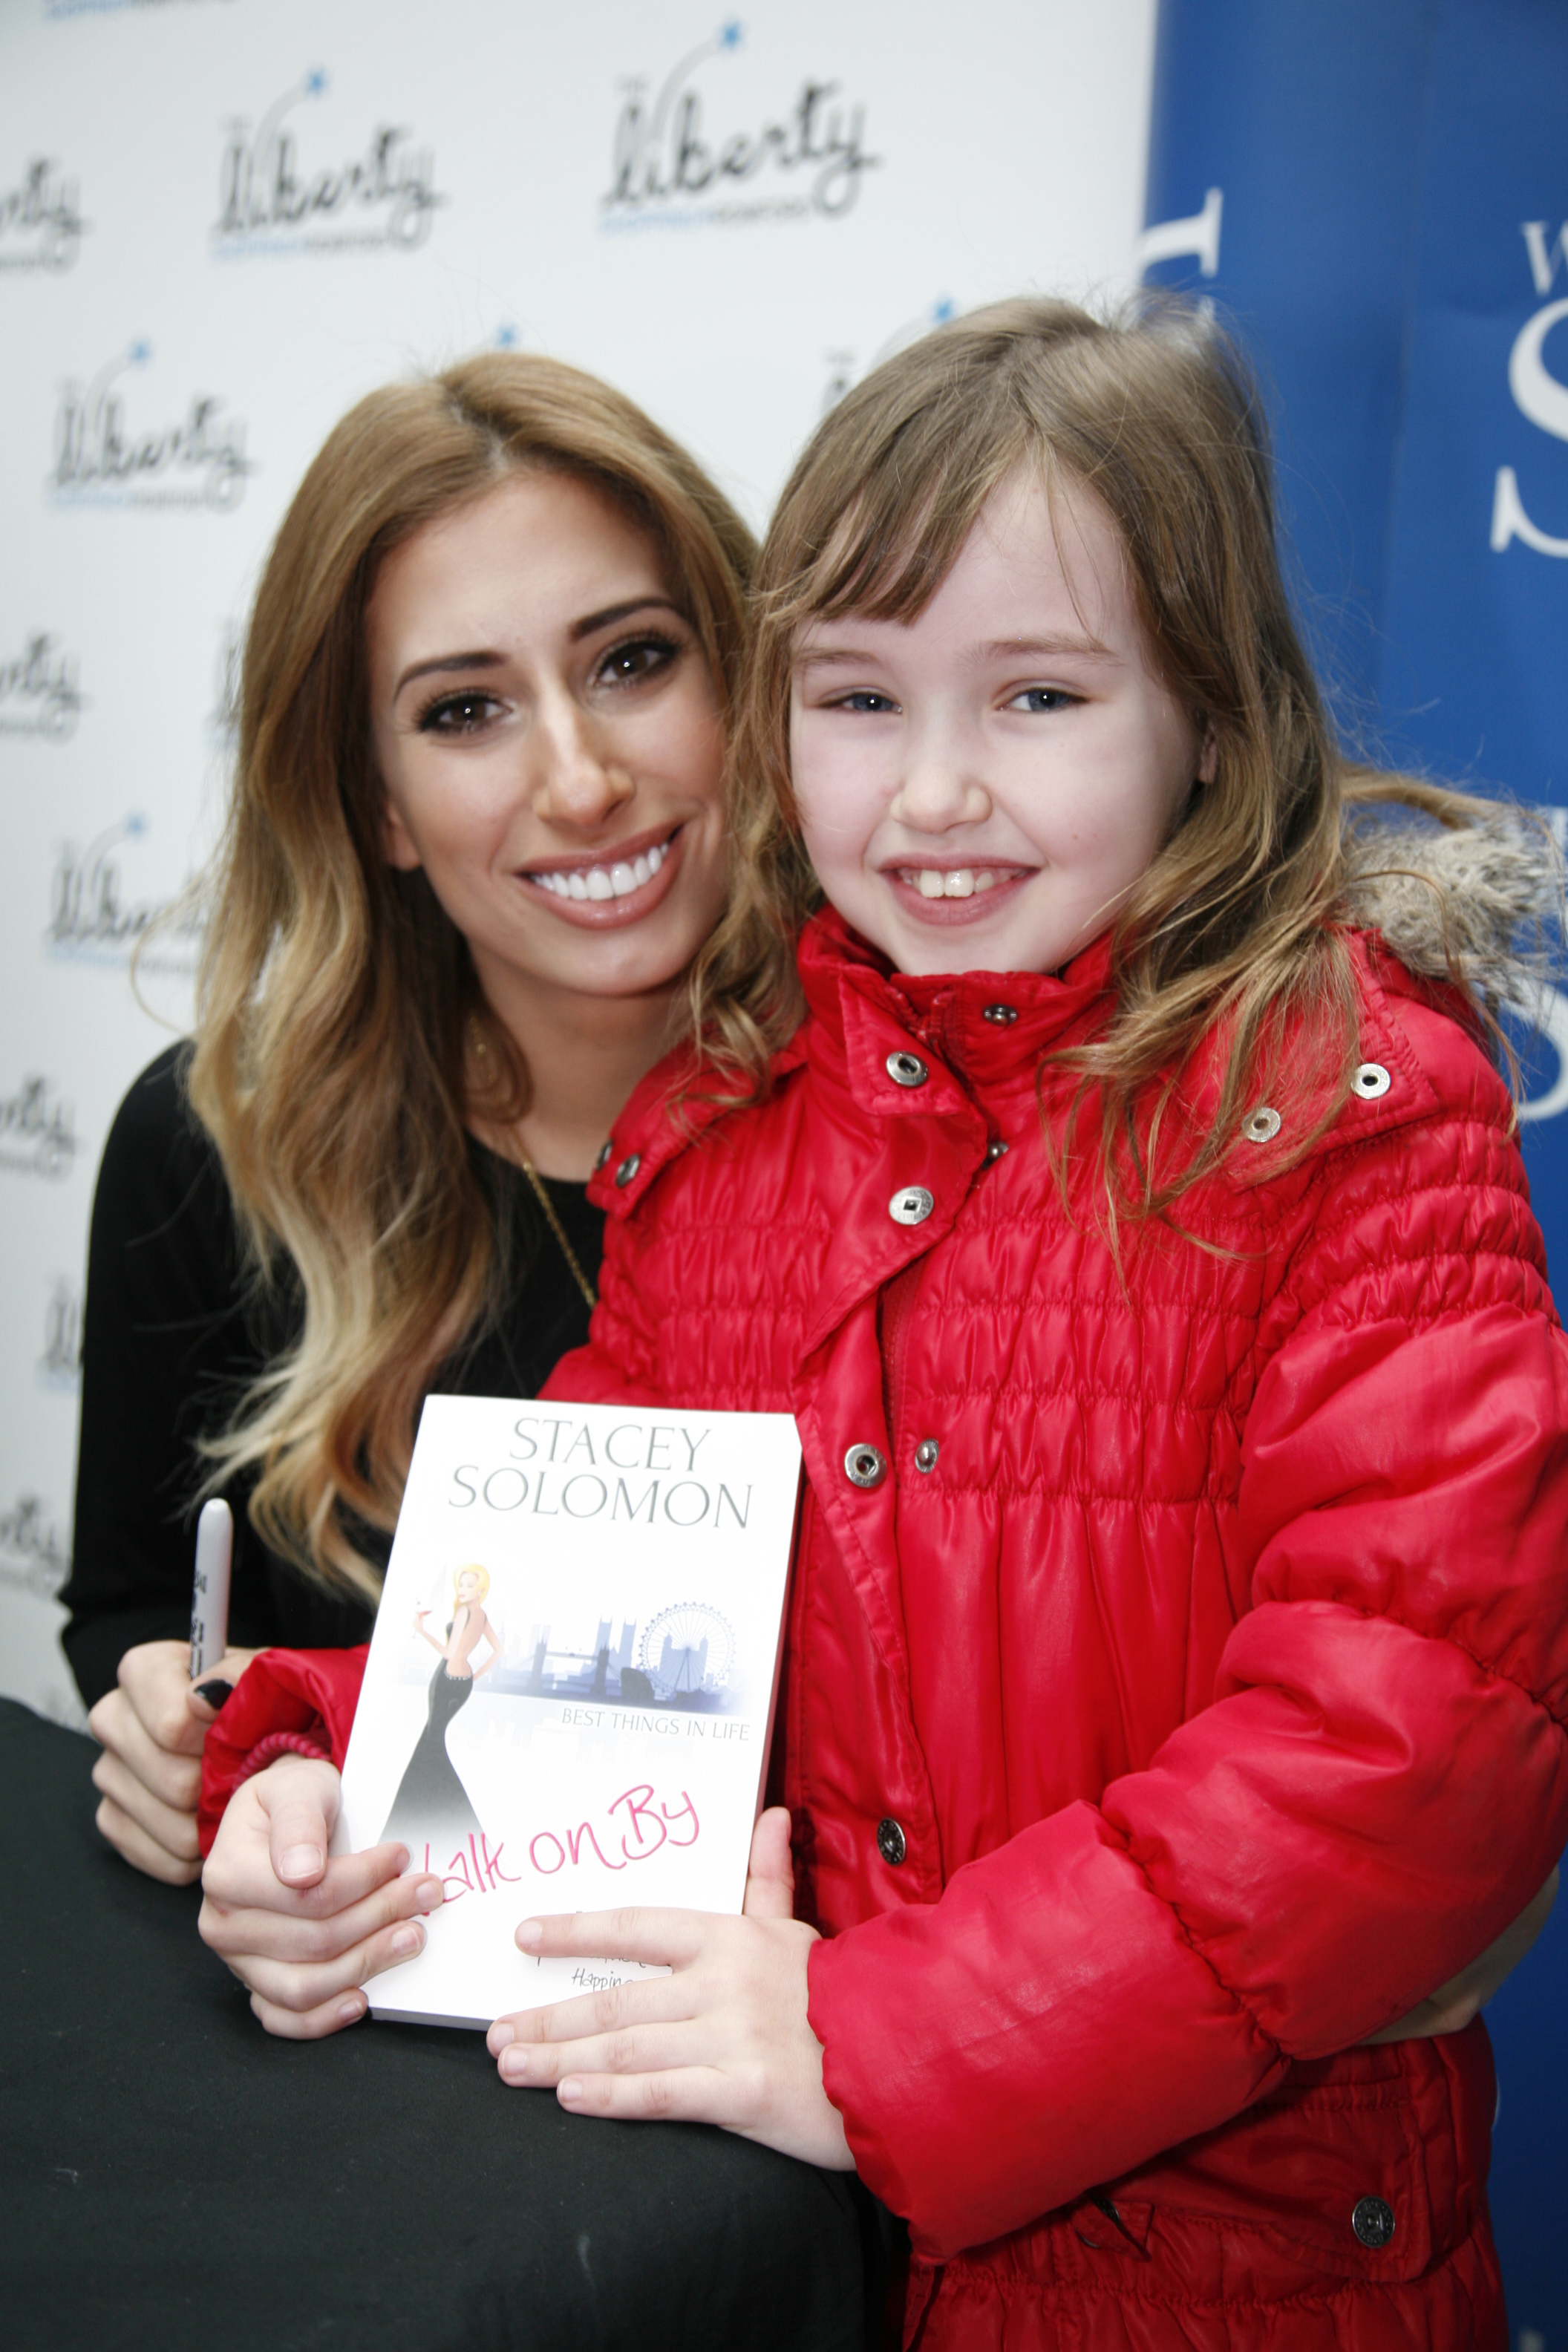 Stacey Solomon with the first fan in the queue (Copyright S Rowse)